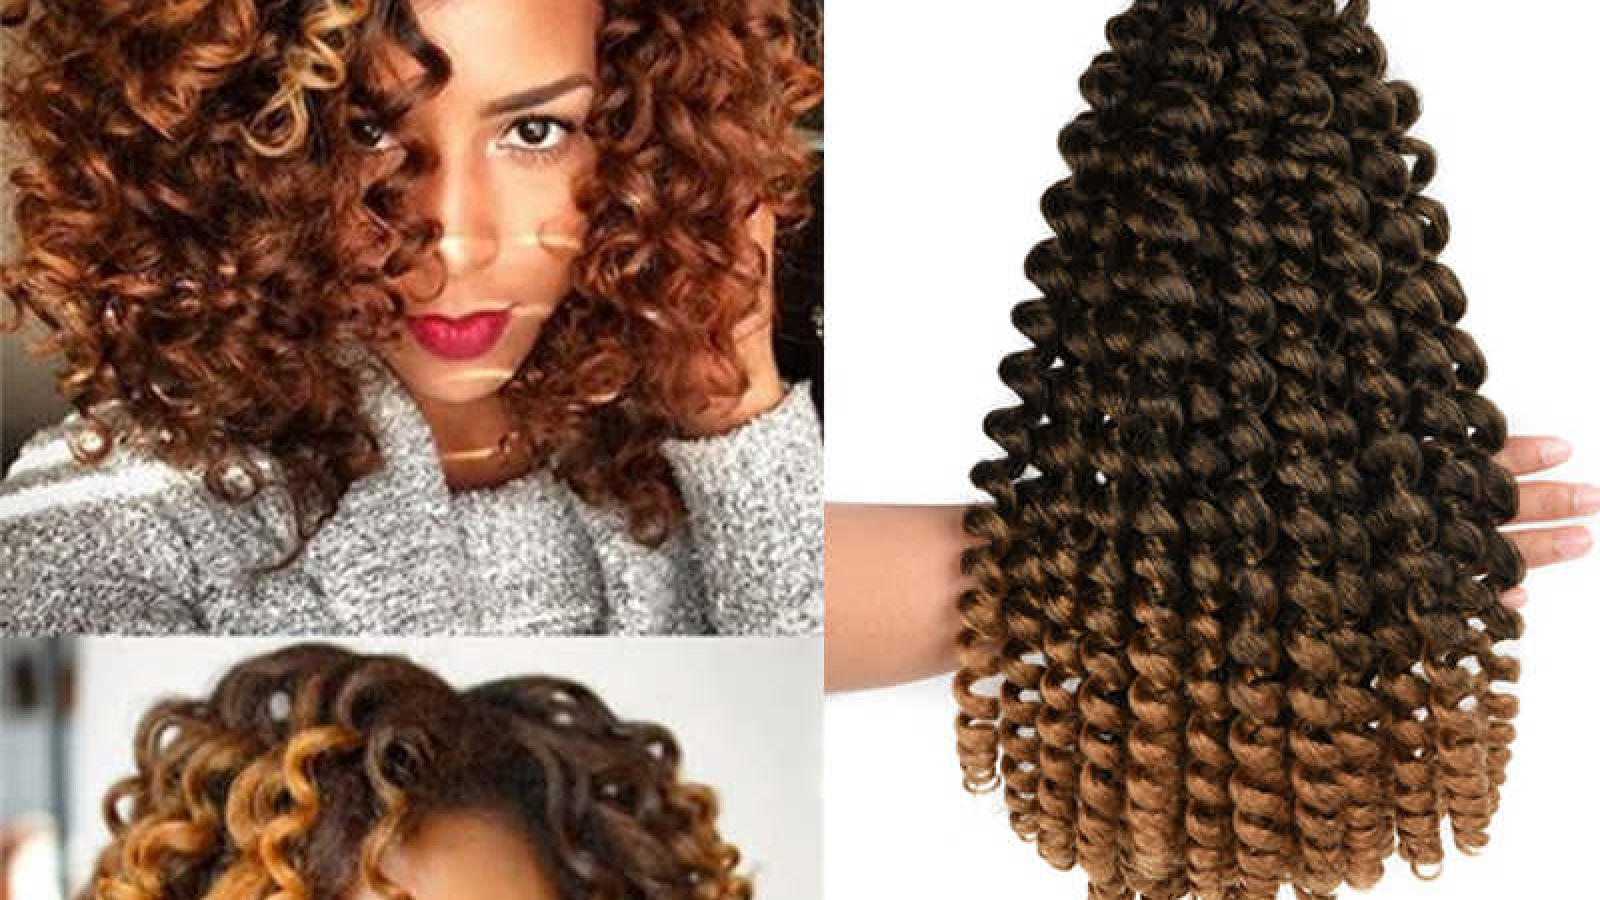 does anyone know where to get curly crochet hair